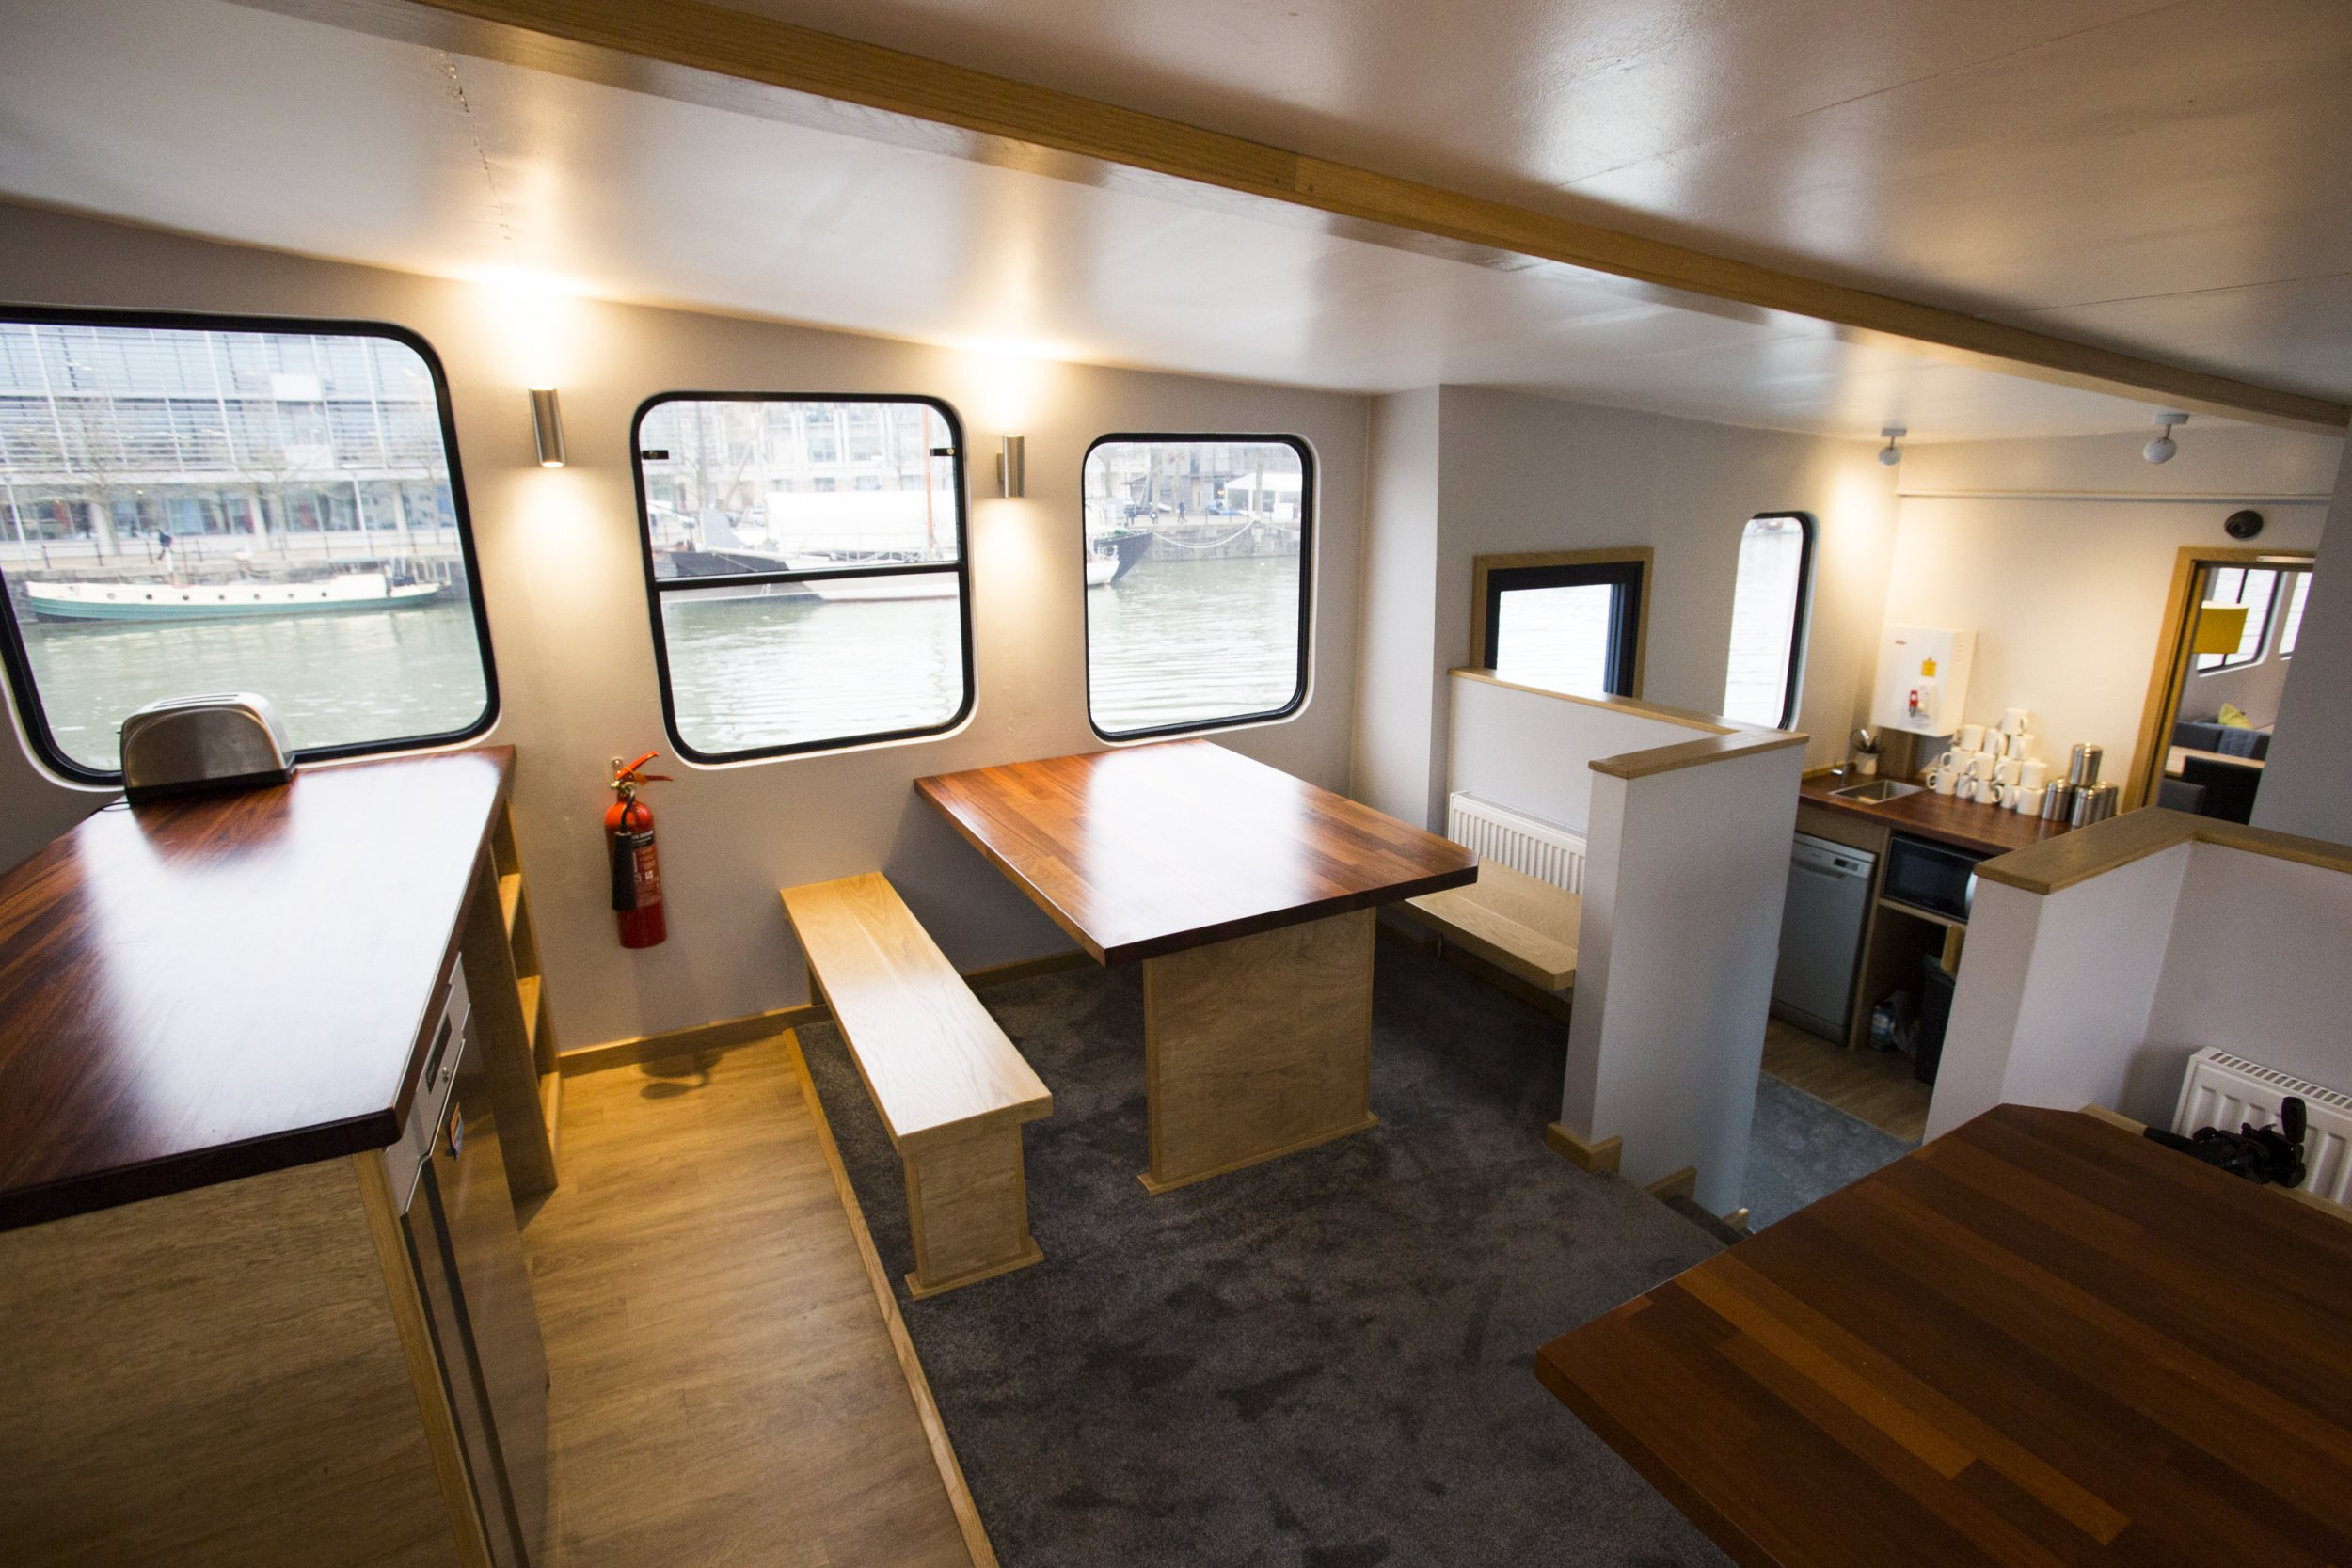 You can now stay in a floating hostel in Bristol